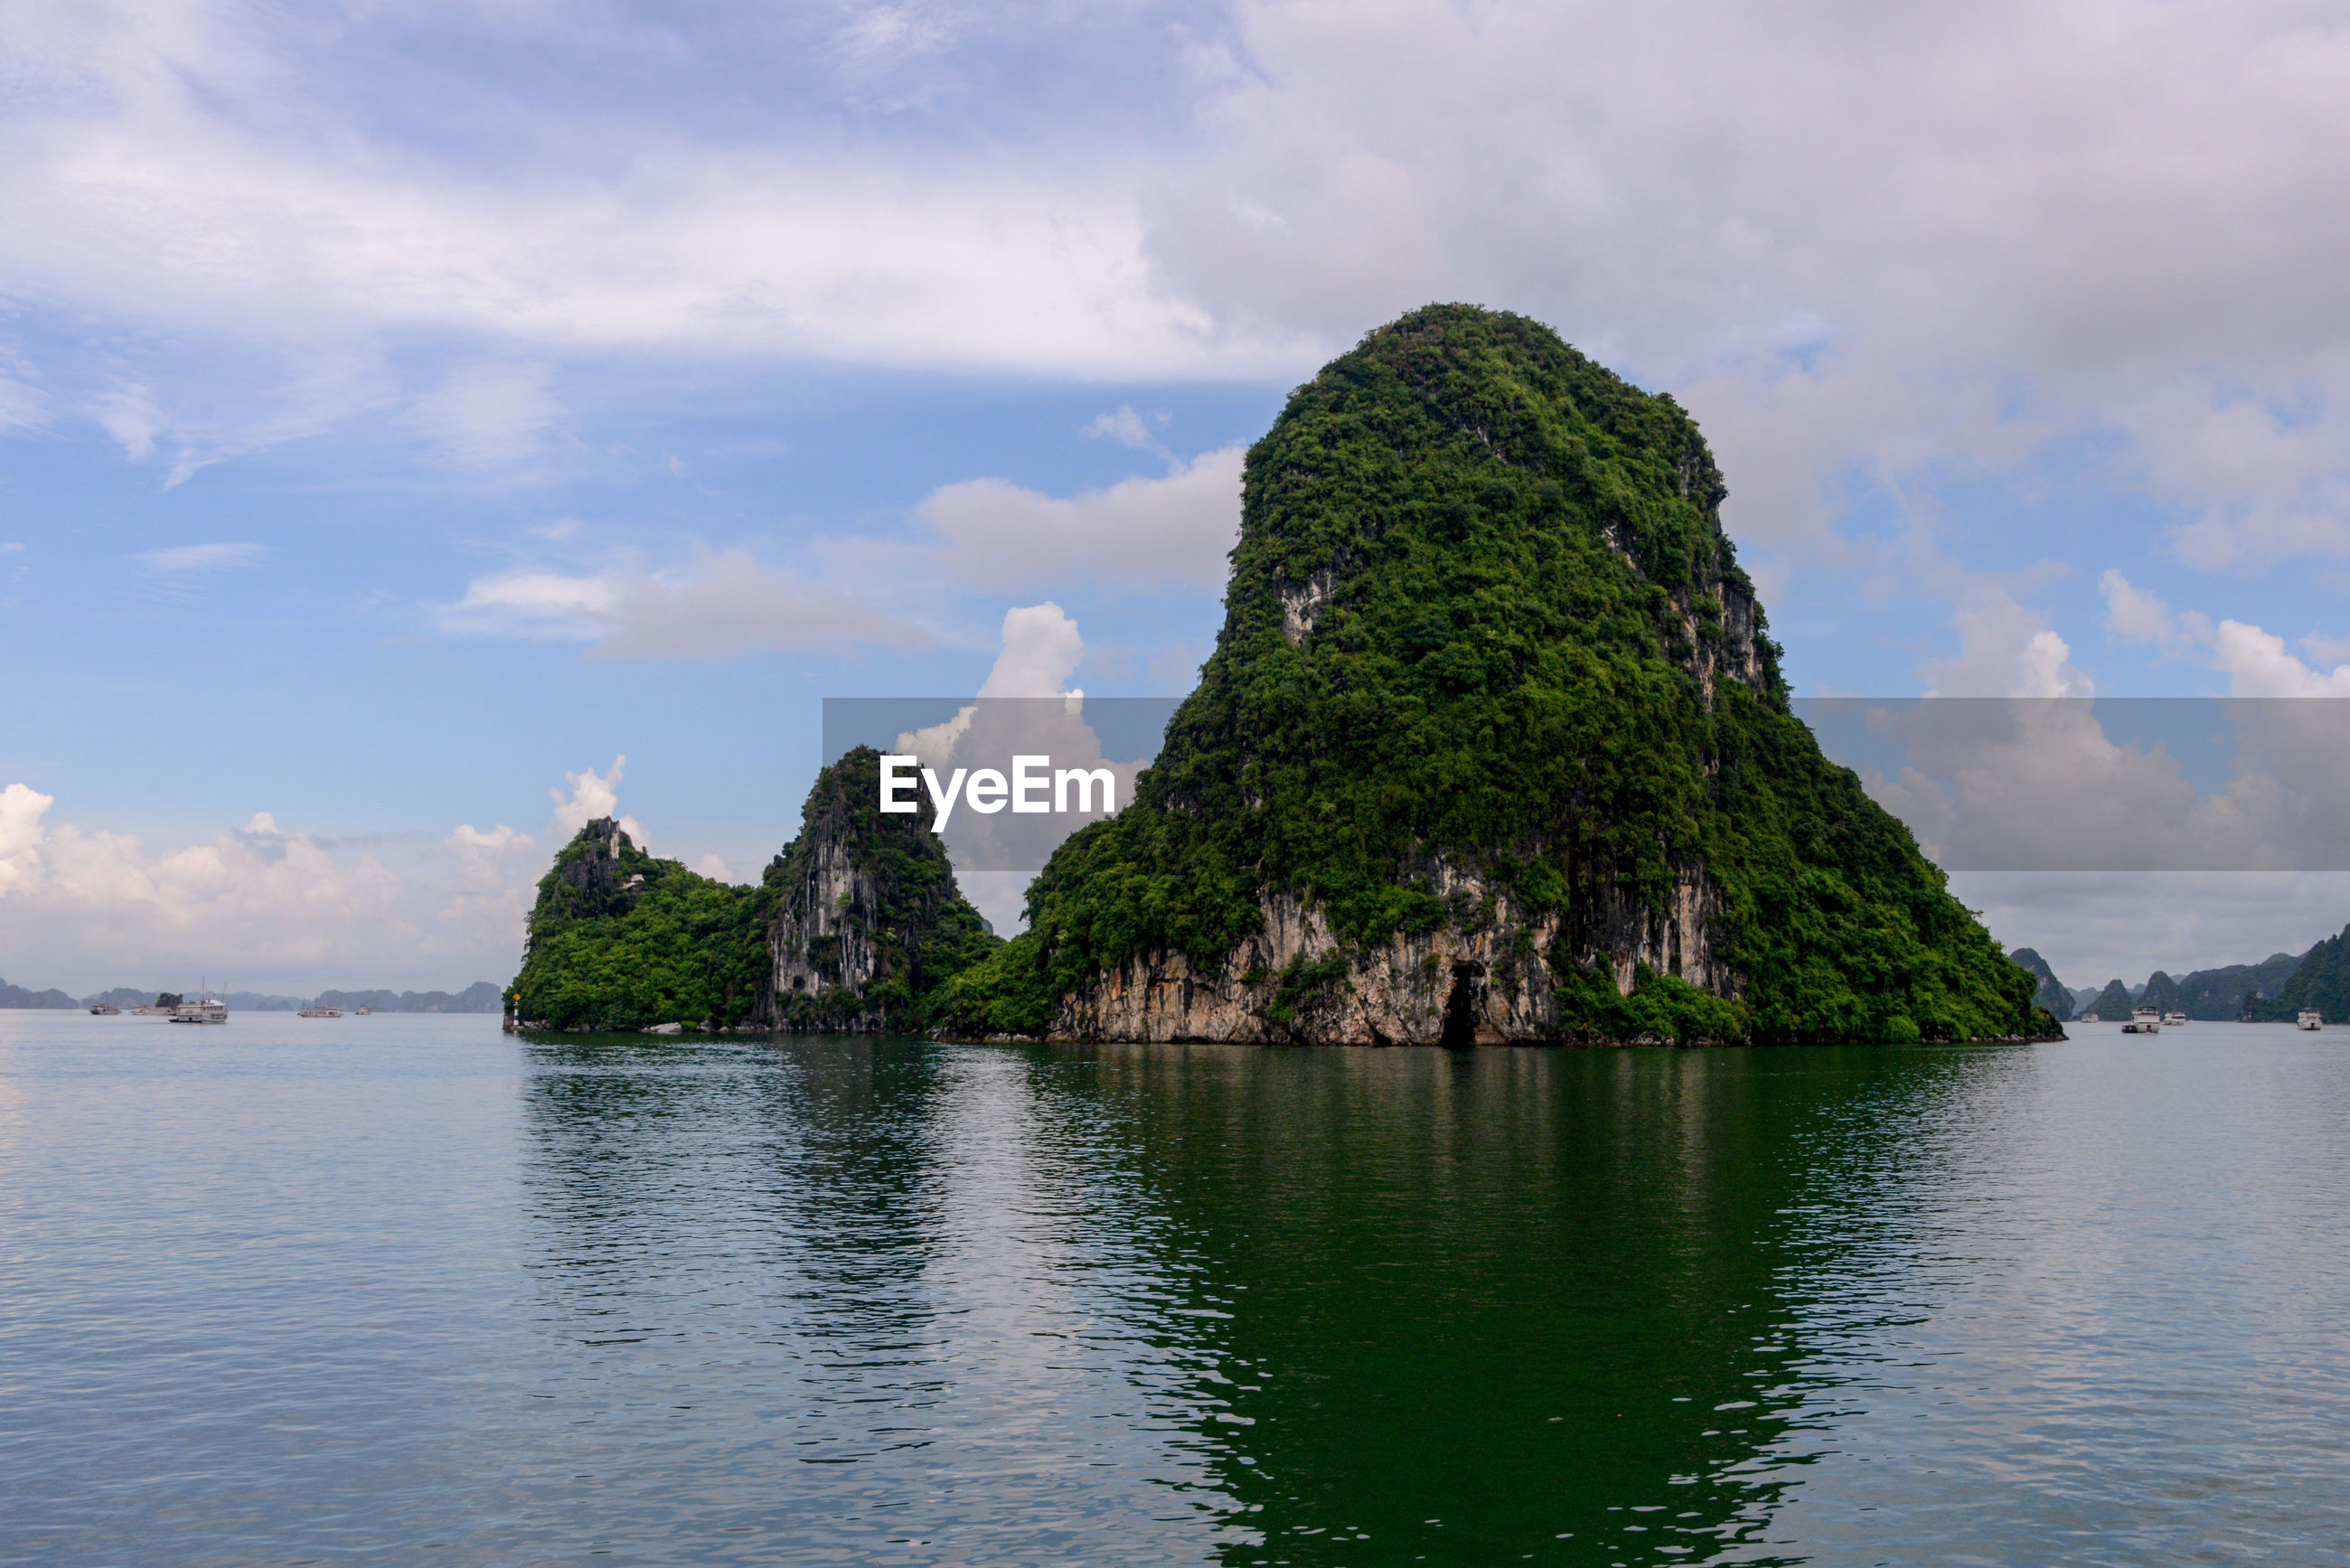 PANORAMIC VIEW OF SEA AND TREES AGAINST SKY